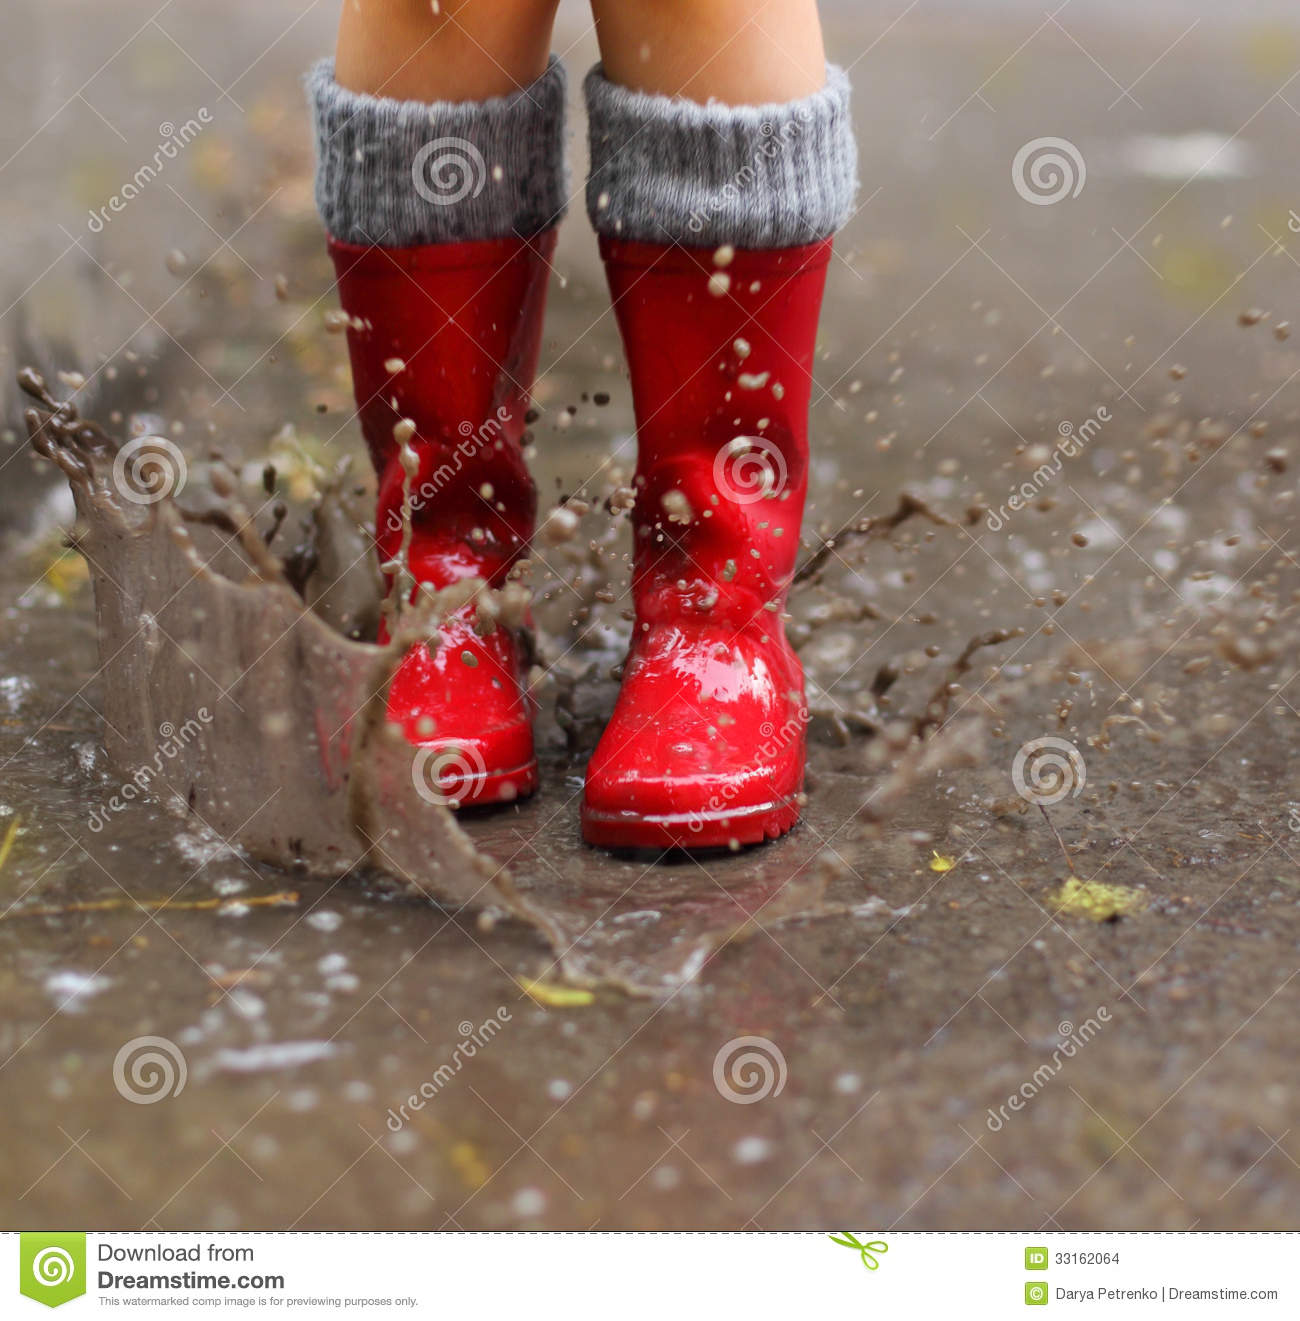 8634d03ec77 Child Wearing Red Rain Boots Jumping Into A Puddle Stock Photo ...